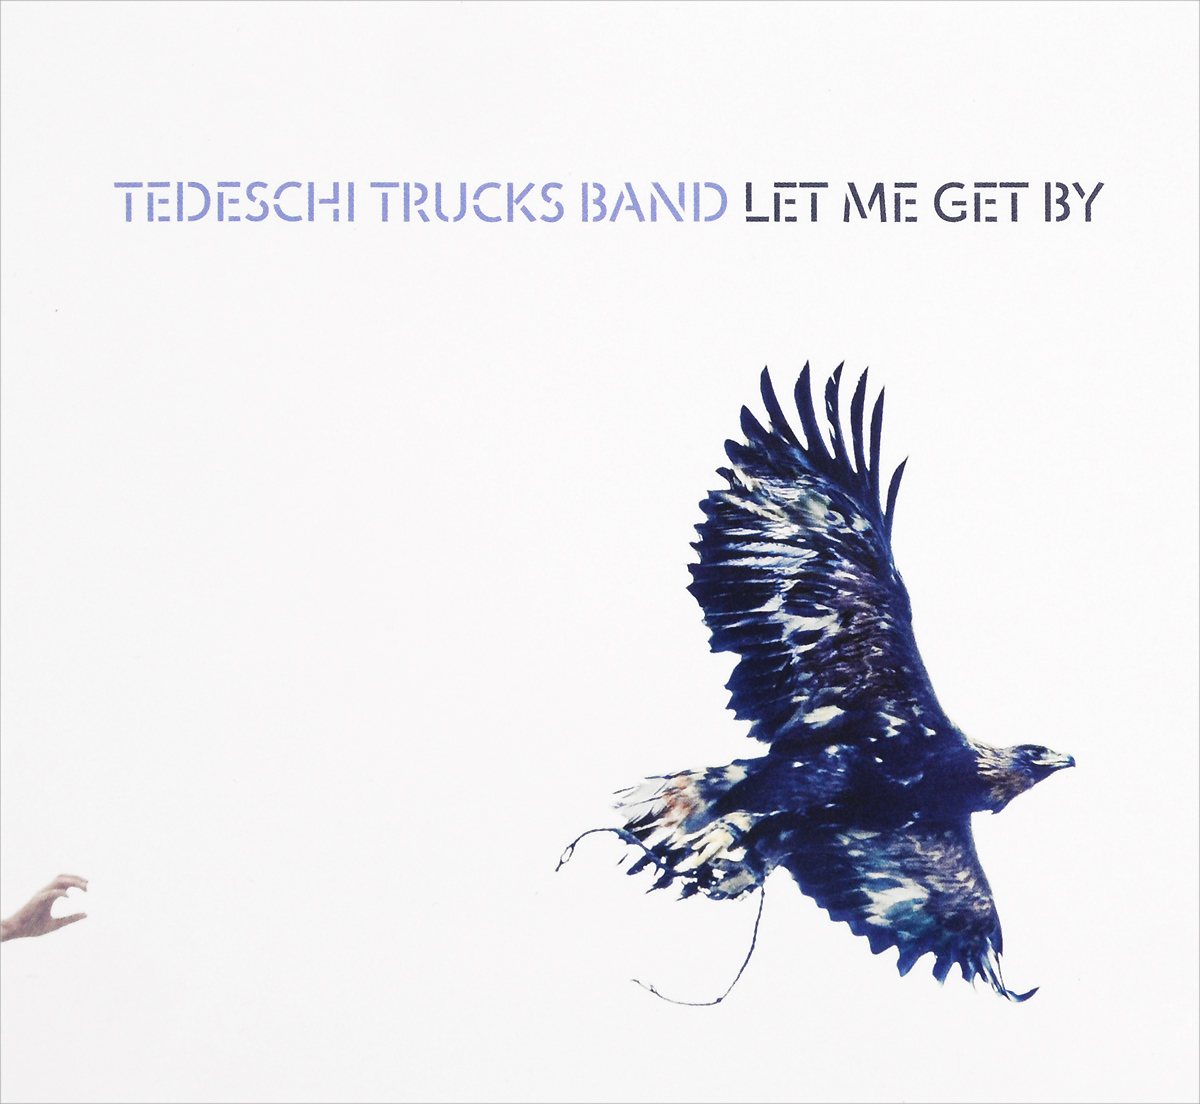 Tedeschi Trucks Band Band. Let Me Get By